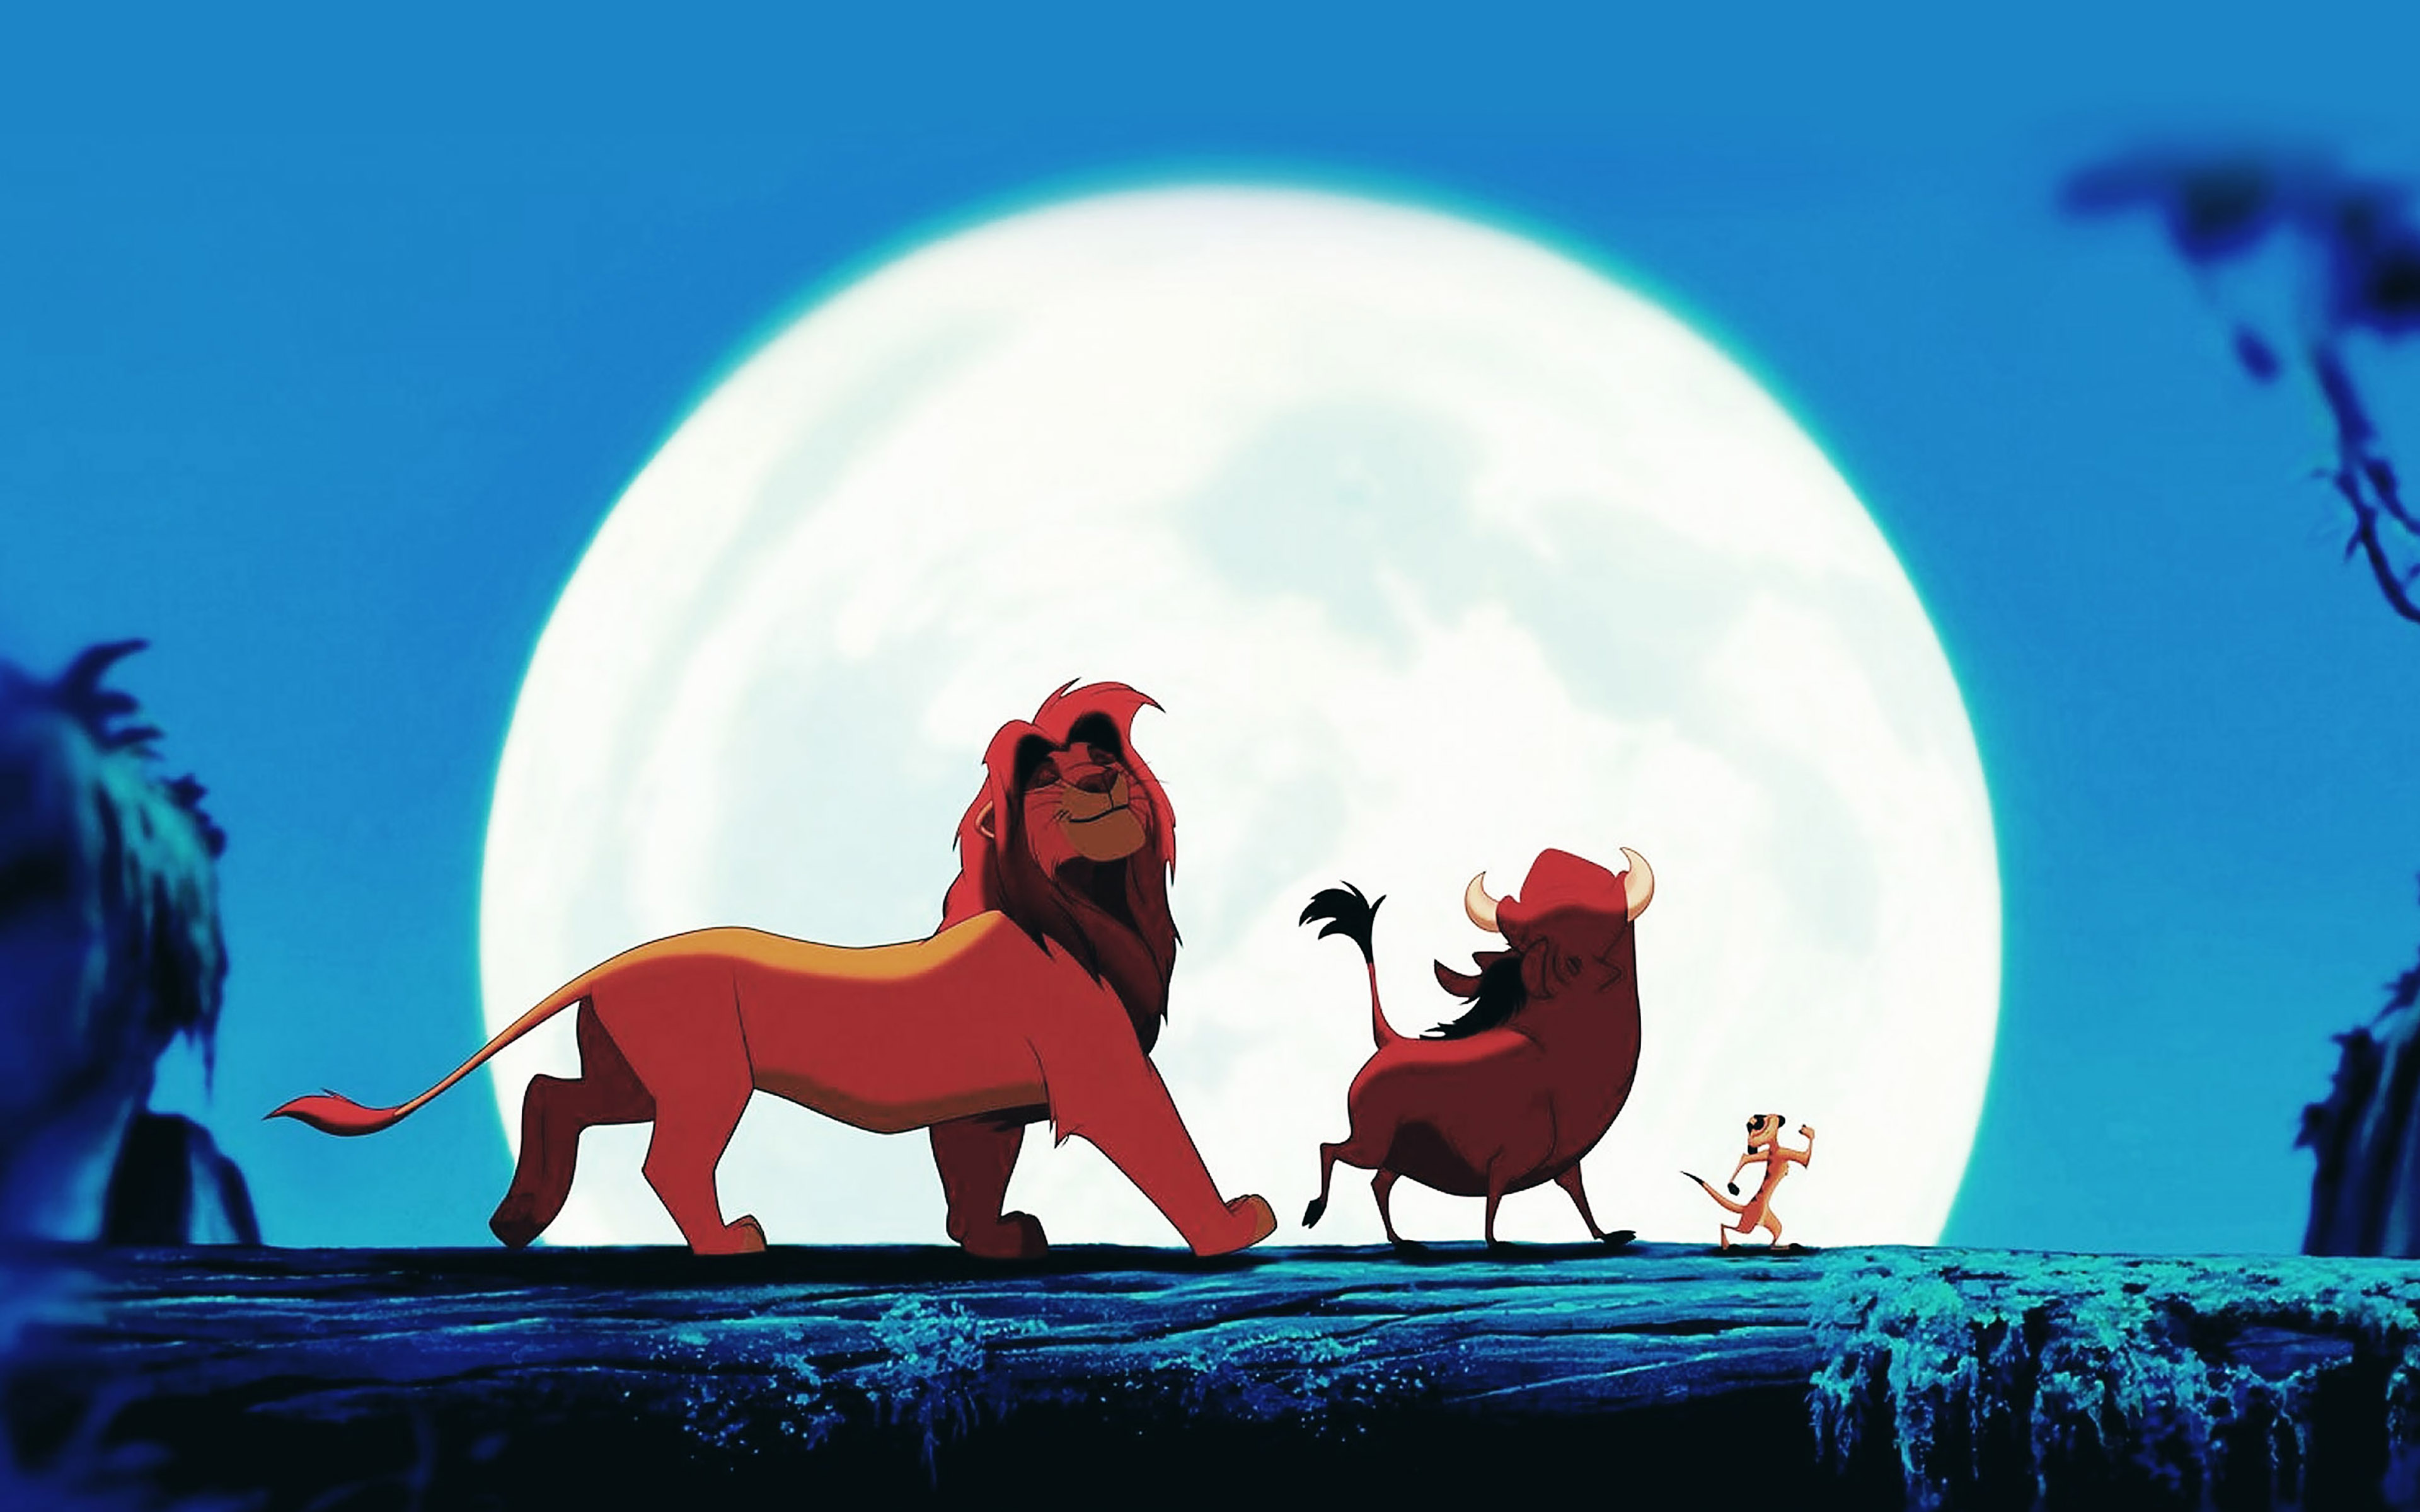 Aa23 Hakuna Matata Disney Lionking Illust Art Papers Co